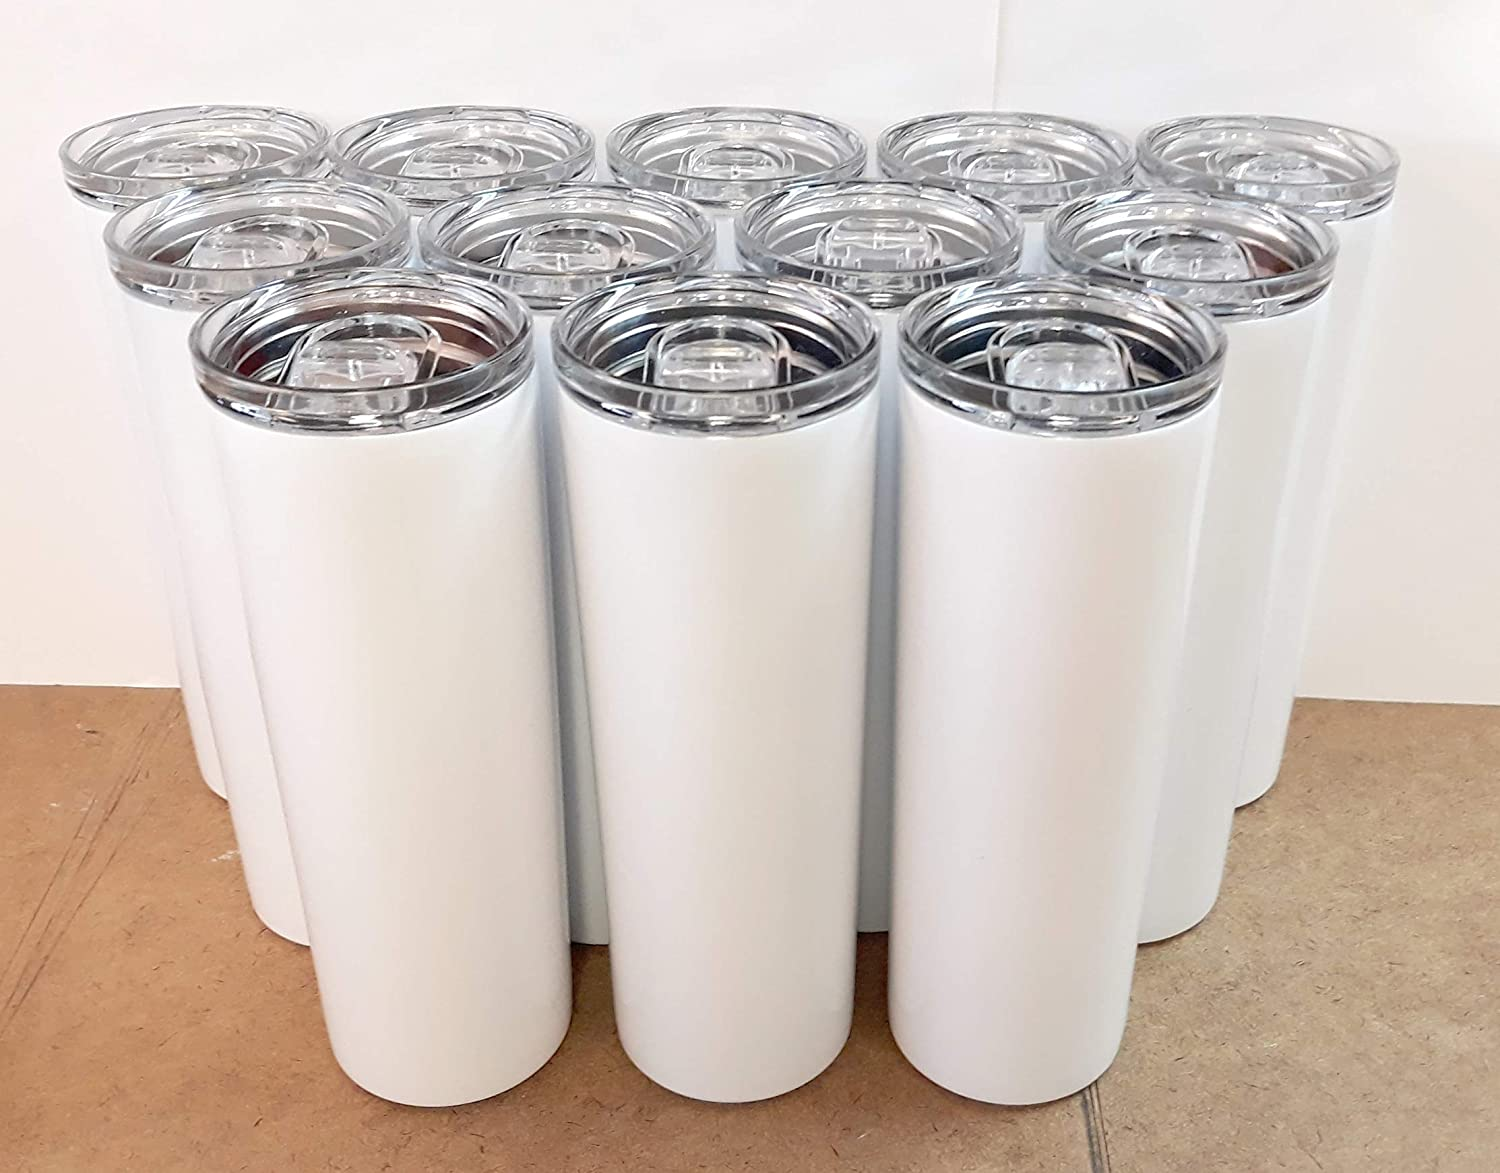 Stellar 20 oz. Skinny Steel 12 Pack Double Wall Stainless Tumbler (White)